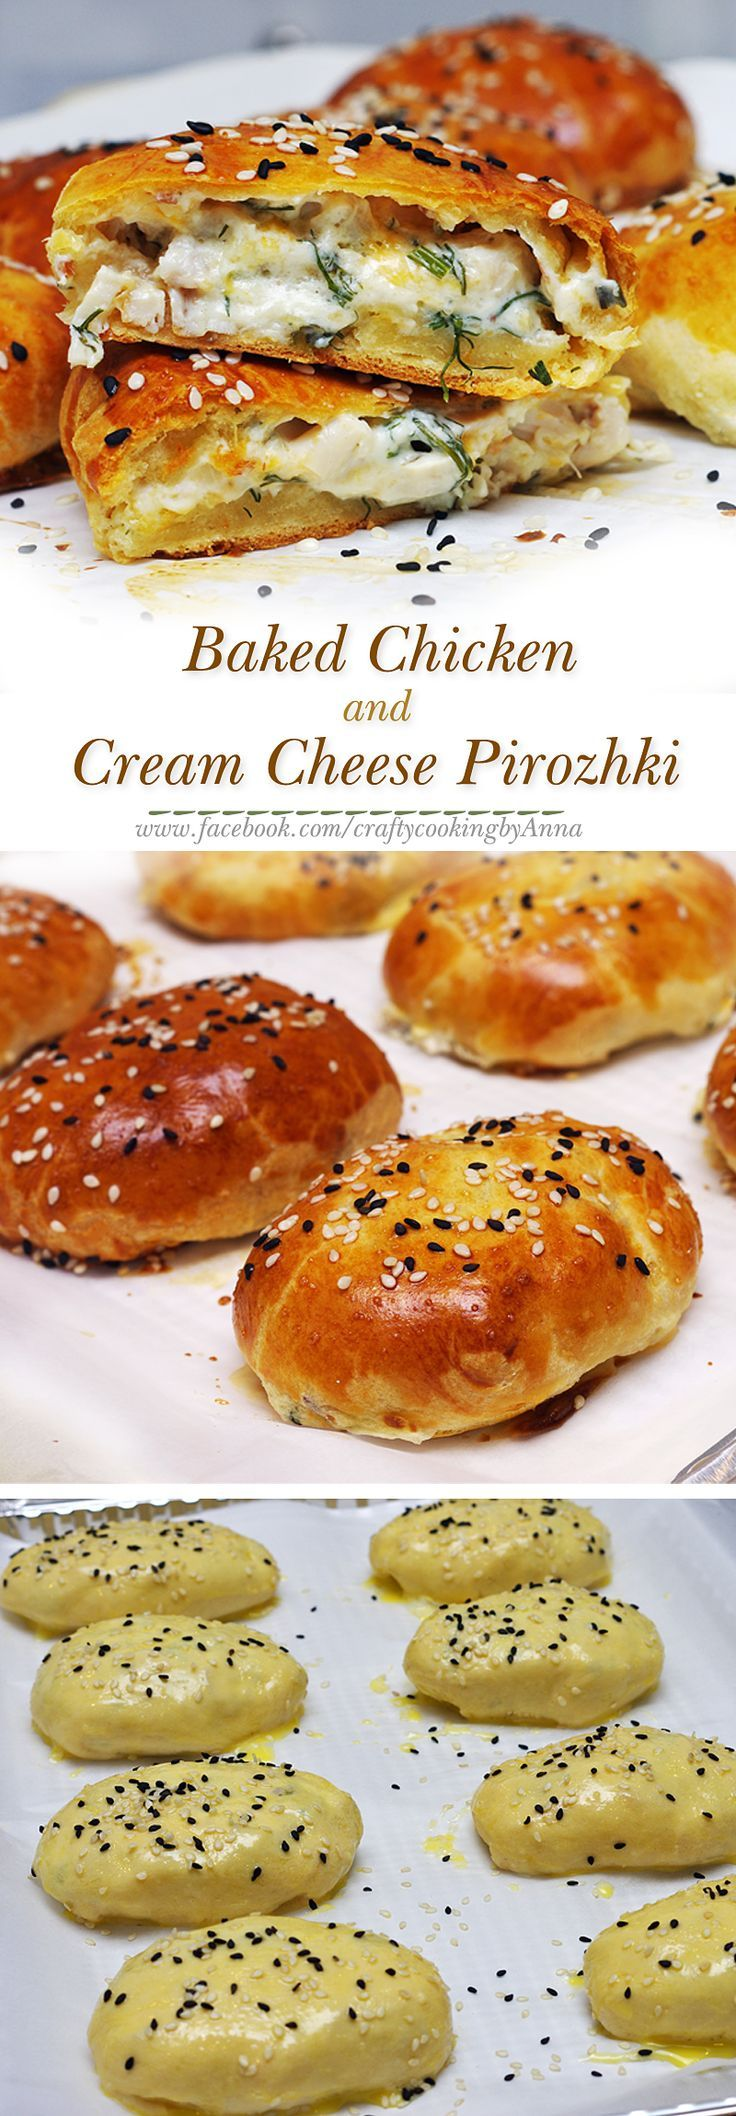 Baked Chicken and Cream Cheese Pirozhki! #easy #delicious #Russian #lunch #crescent rollsThanks for the follow.  Hope we can trade pins and ideas in the future.  As an offering   GO2 www.BARGAINSRUS.club for your FREE  daily email blog presenting the day.  LIKE US AT WWW.FACEBOOK.COM/BARGAINSRUS.CLUB